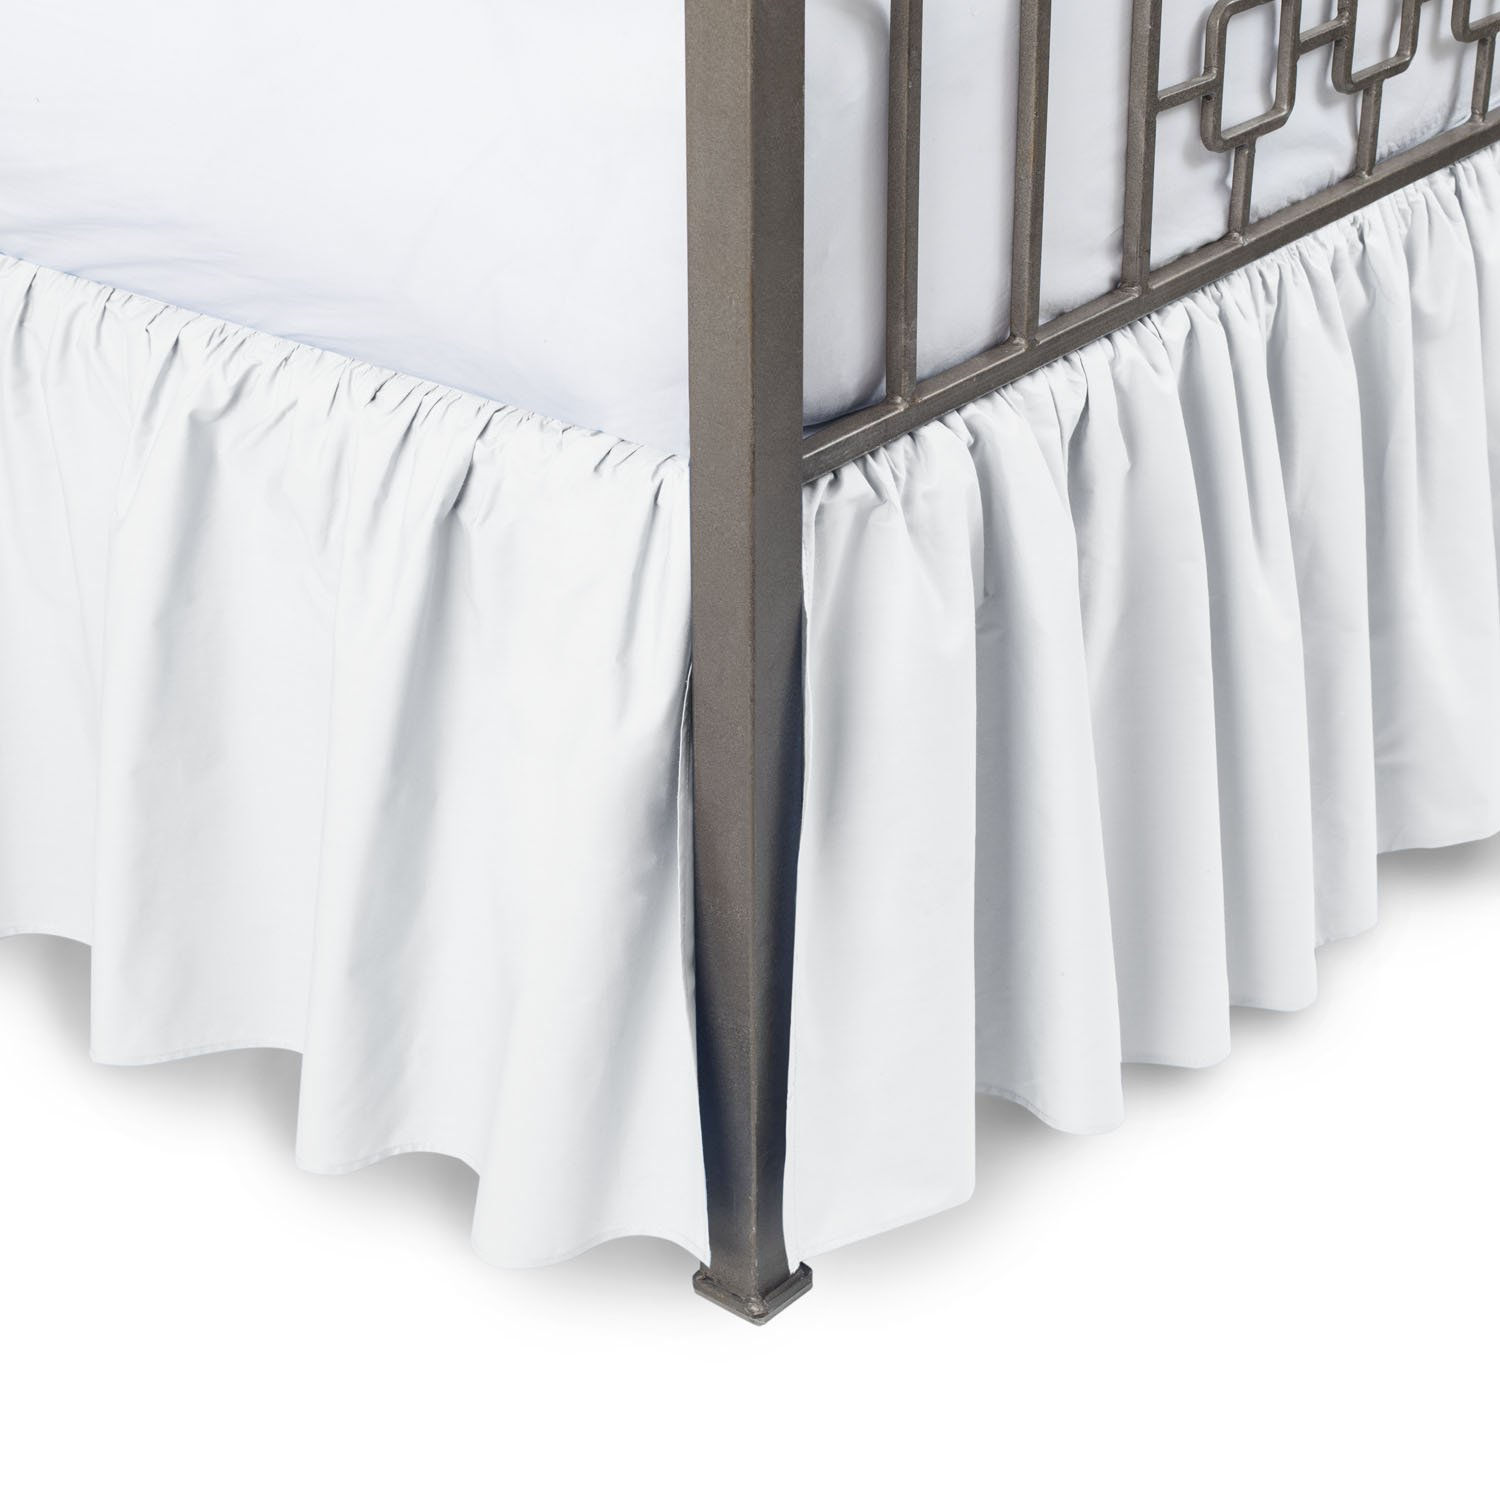 Vivacious Collection Hotel Quality 800TC Pure Cotton Dust Ruffle Bed Skirt 17'' Drop Length 100% Egyptian Cotton White King Size